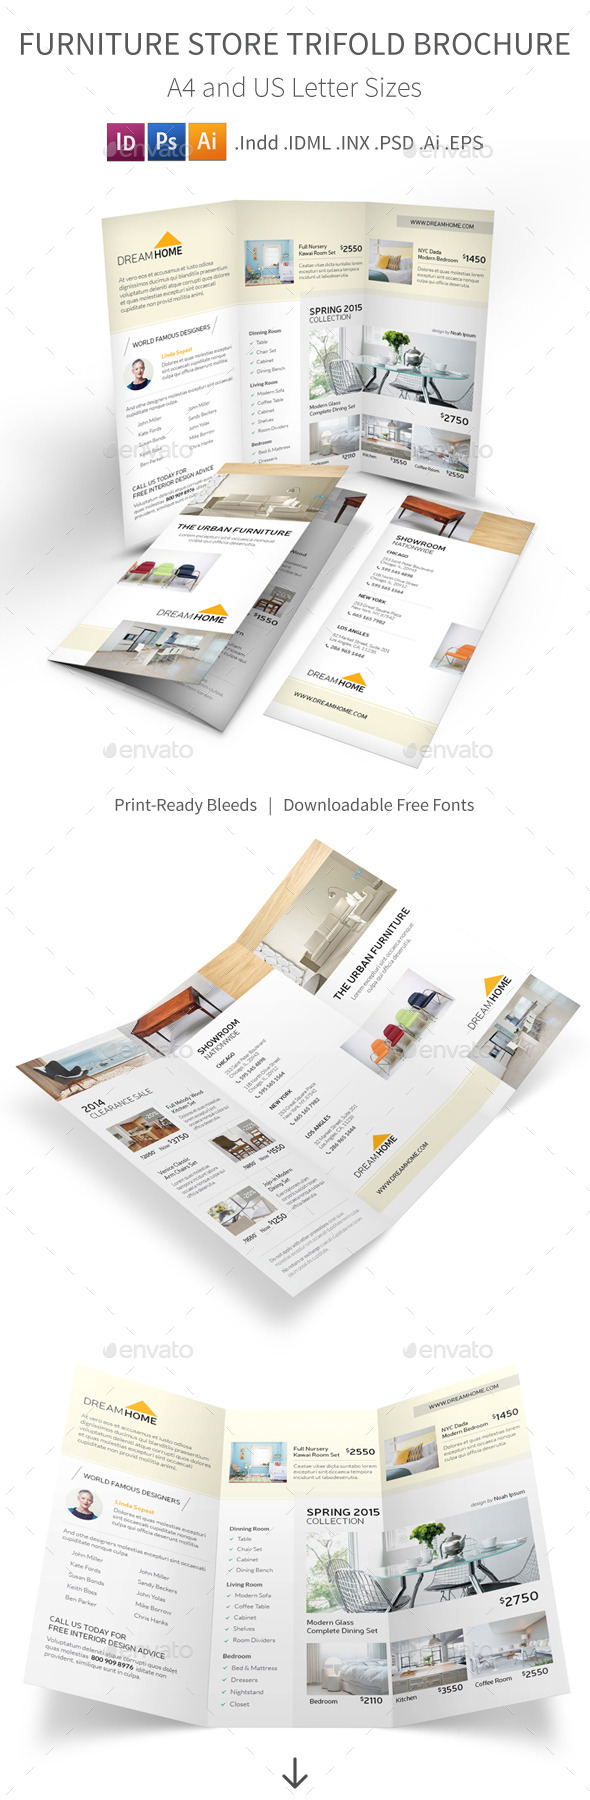 GraphicRiver Furniture Store Trifold Brochure 10874420